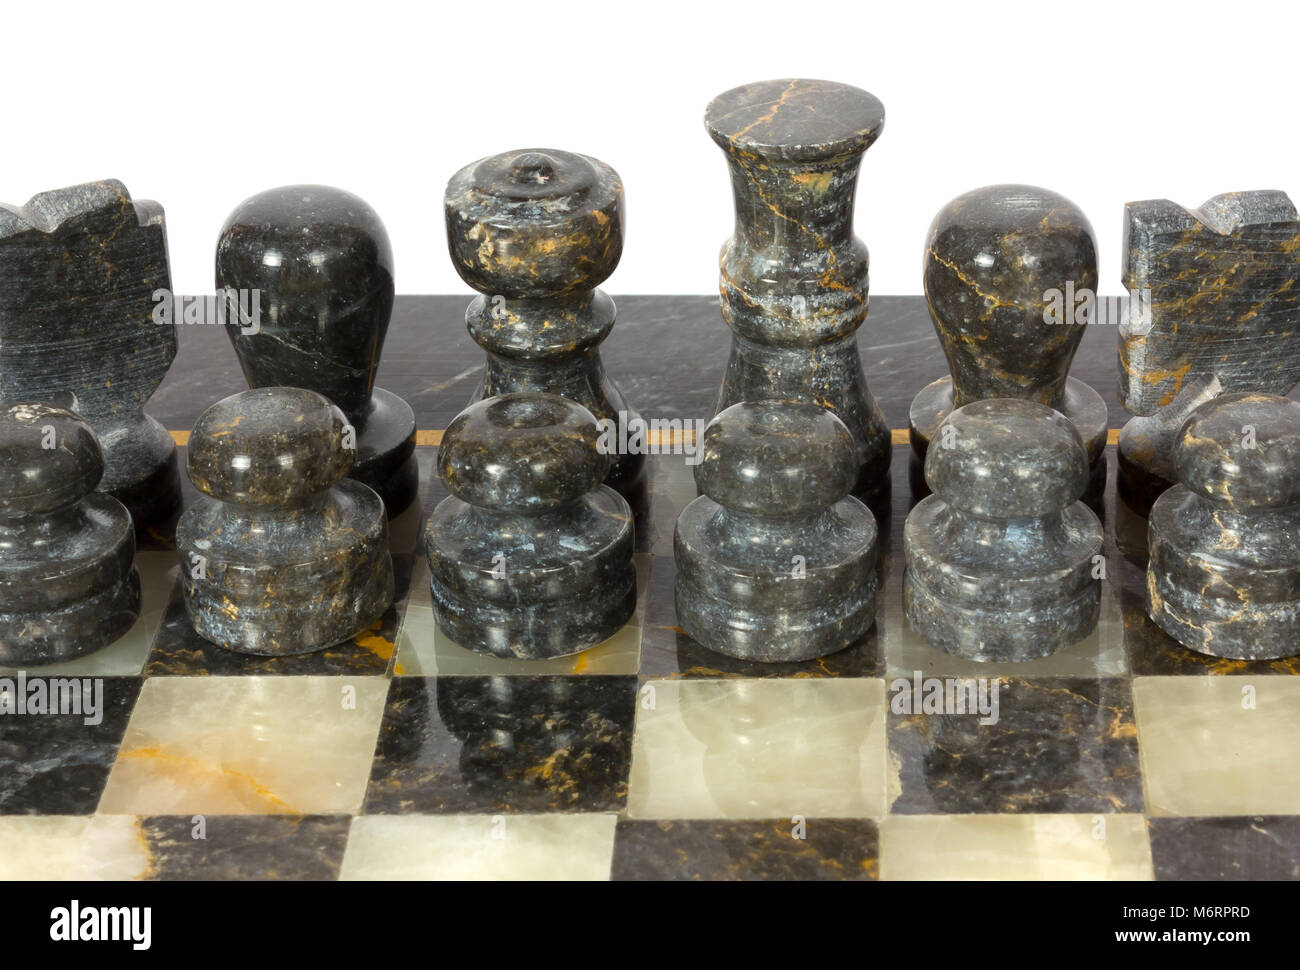 Black marble chessmen on a chessboard - Stock Image